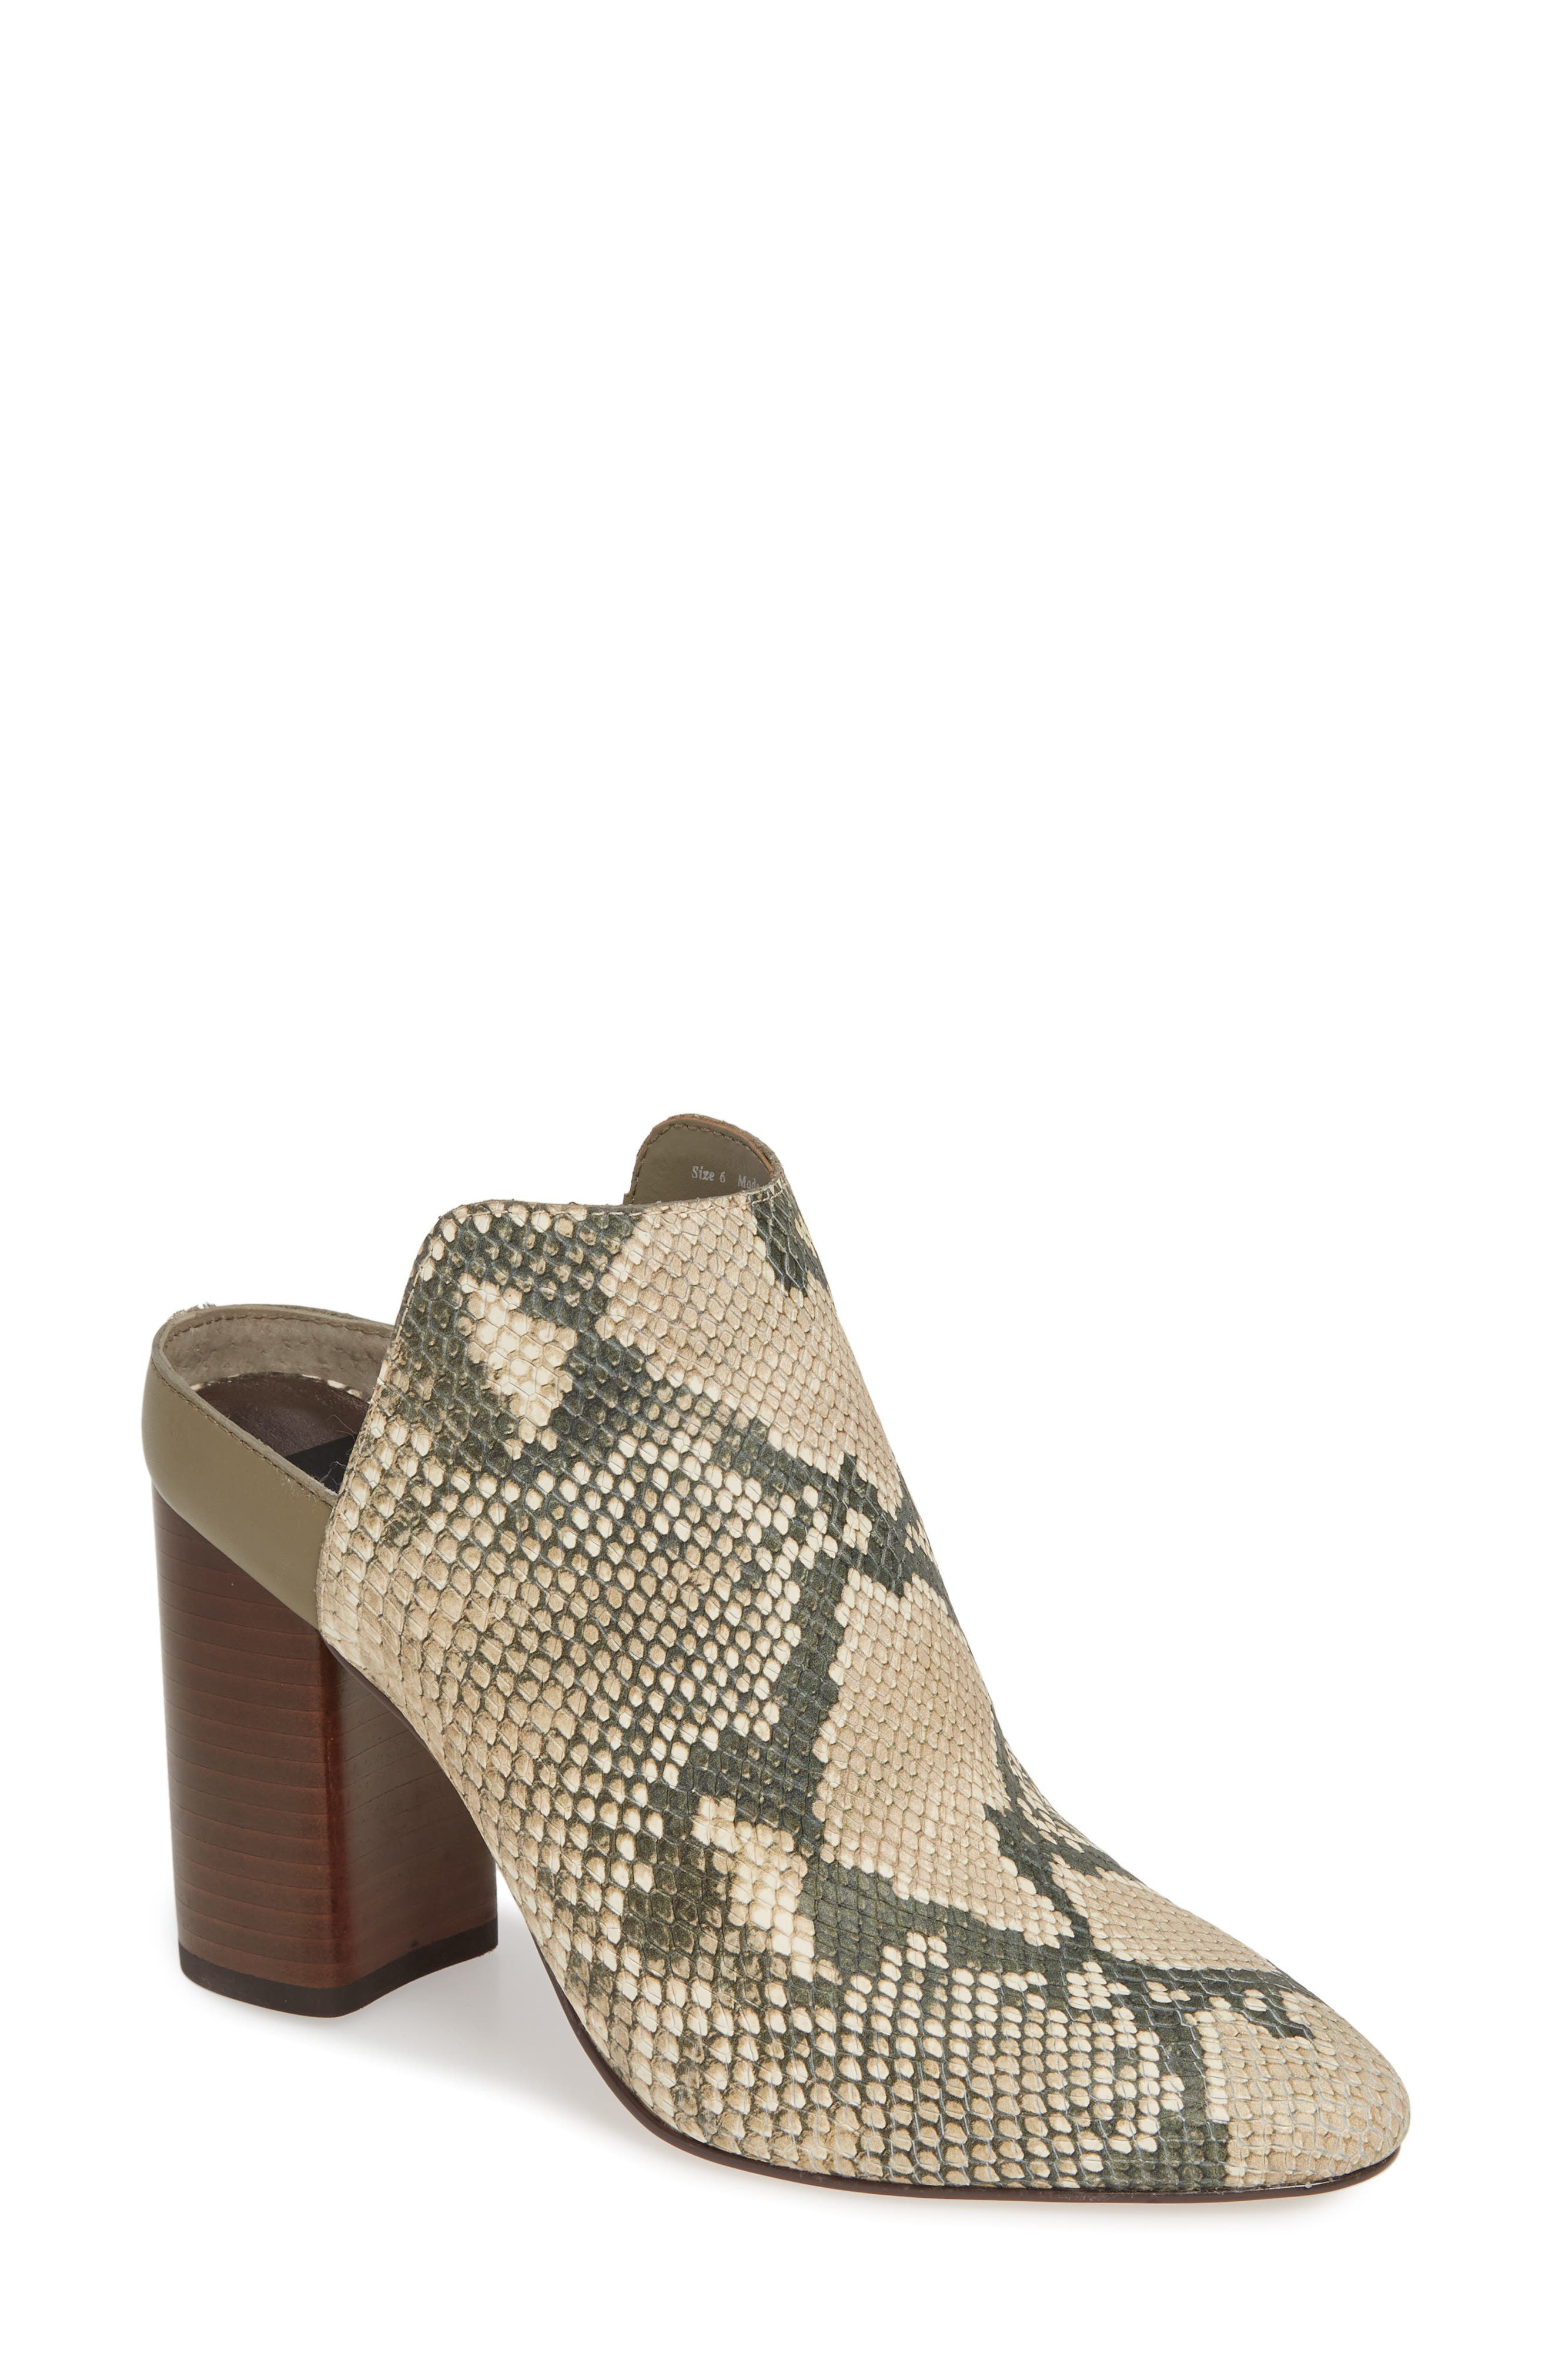 DOLCE VITA,                             Renly Mule,                             Main thumbnail 1, color,                             SNAKE PRINT LEATHER